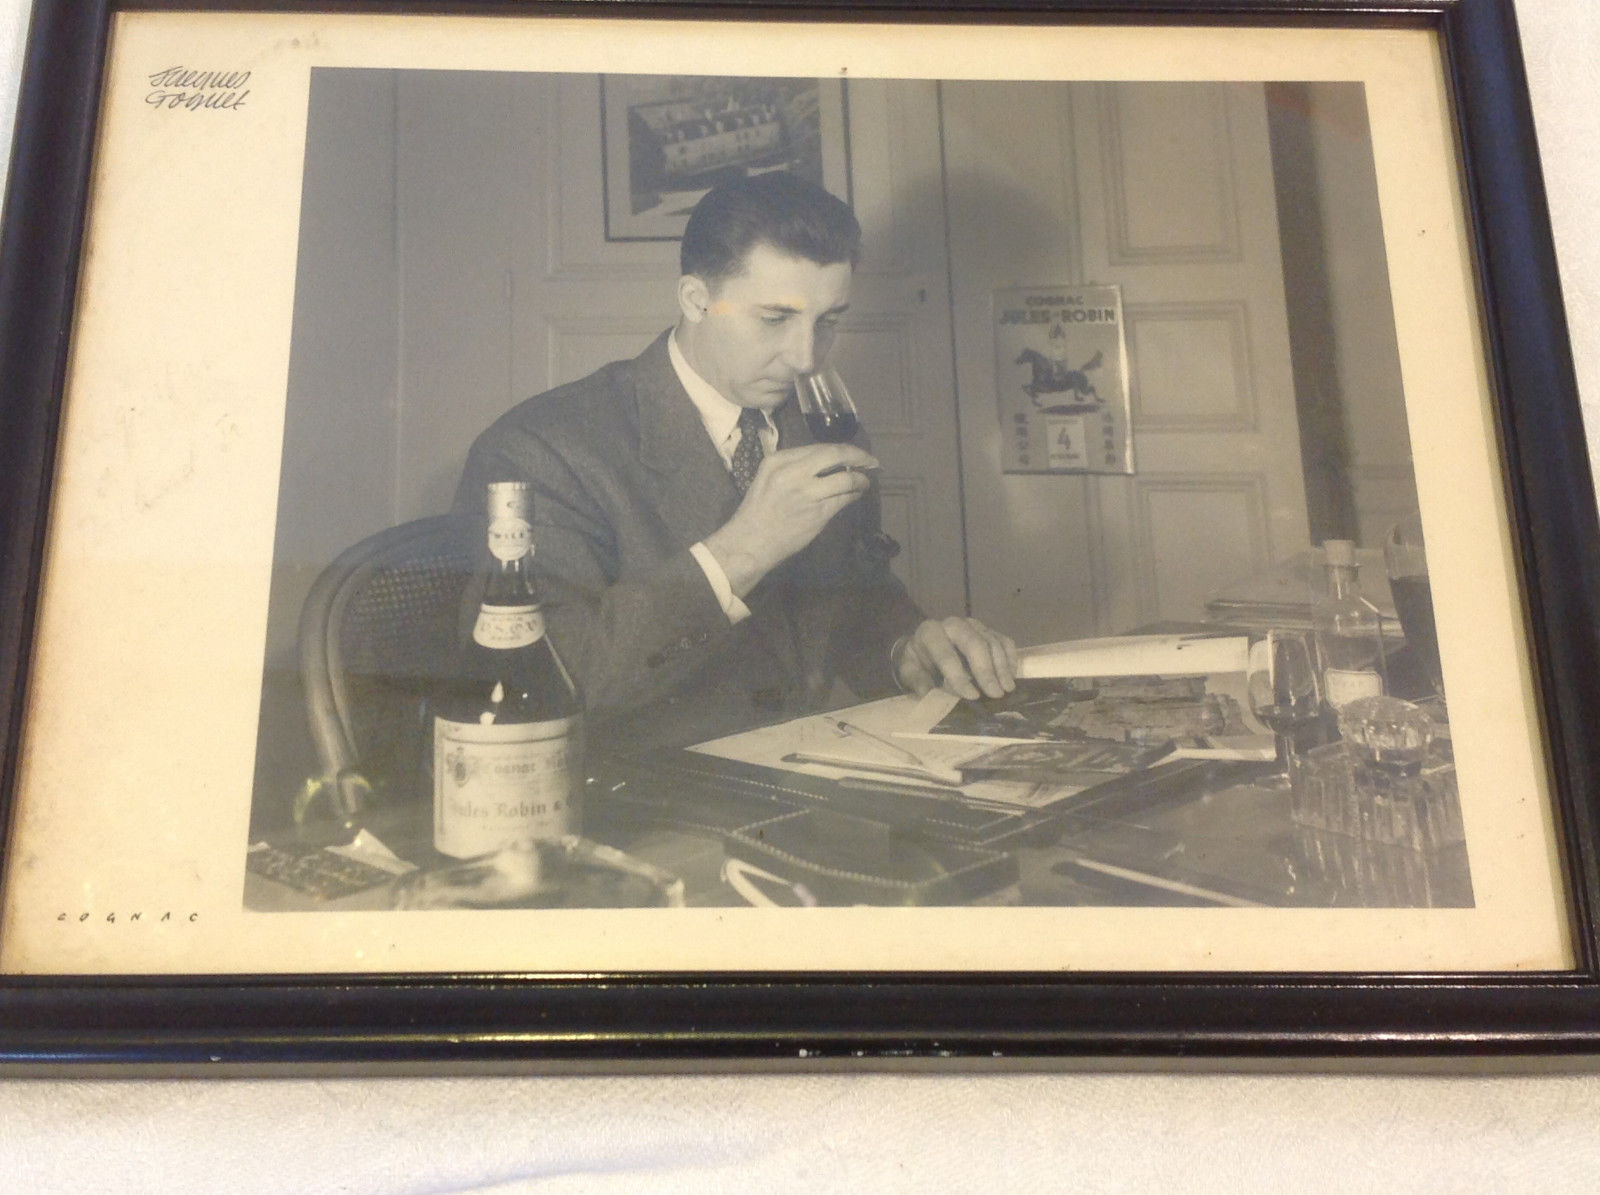 Vintage framed matted photograph of man tasting Jules Robin Cognac signed